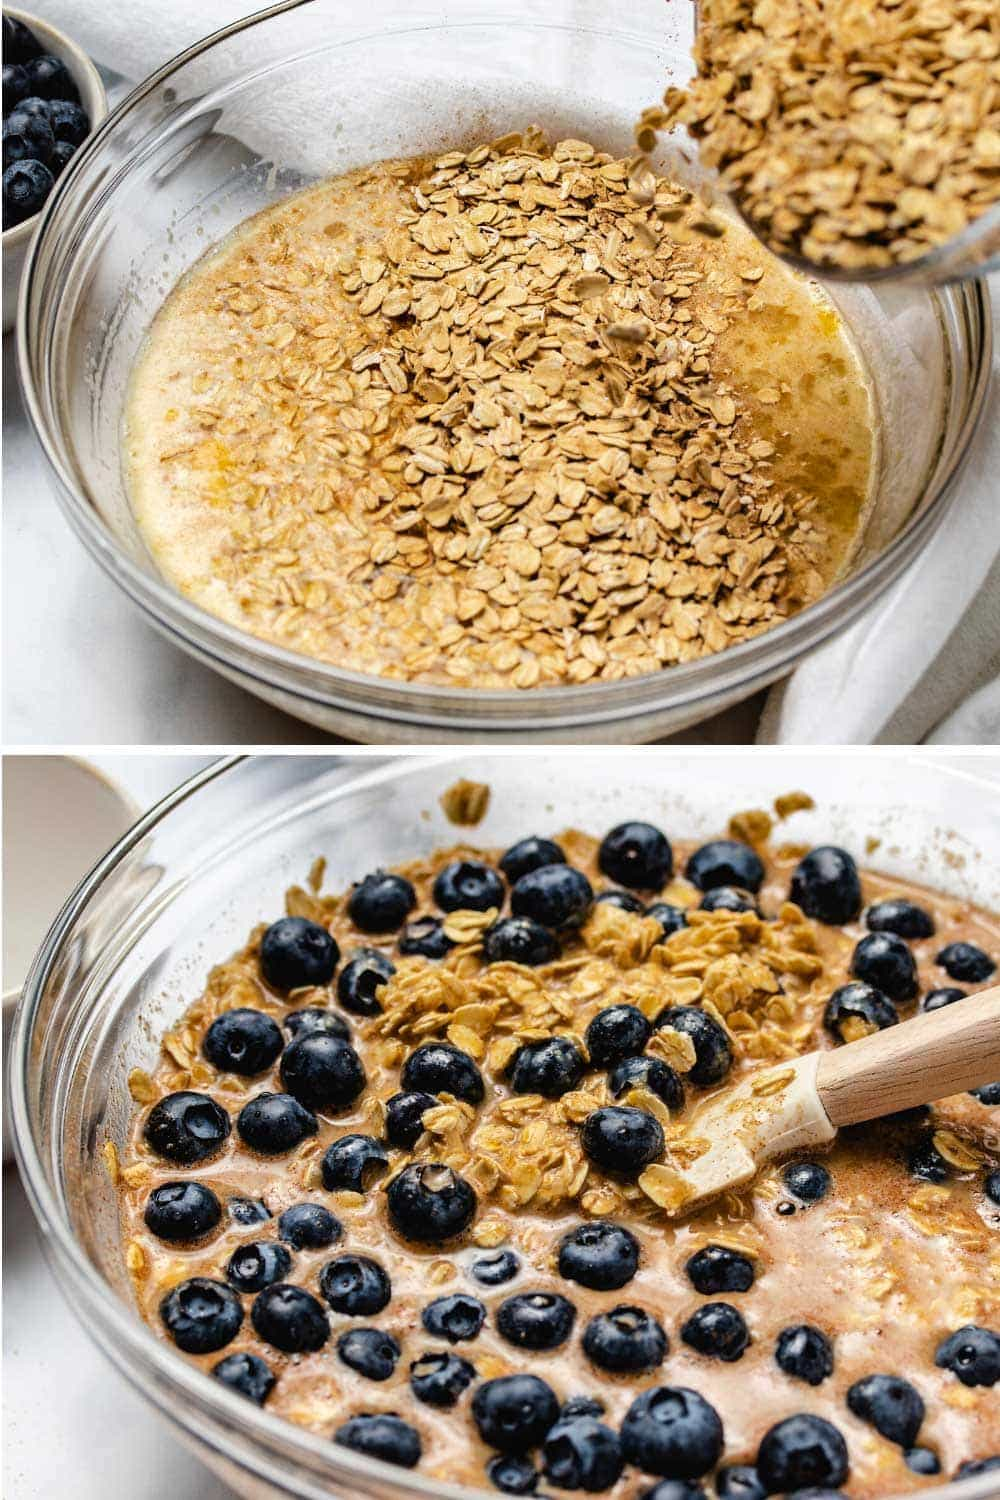 First photo shows dry ingredients for baked oatmeal being added to wet ingredients in a large glass bowl. Second photo shows fresh blueberries being folded into the same bowl.